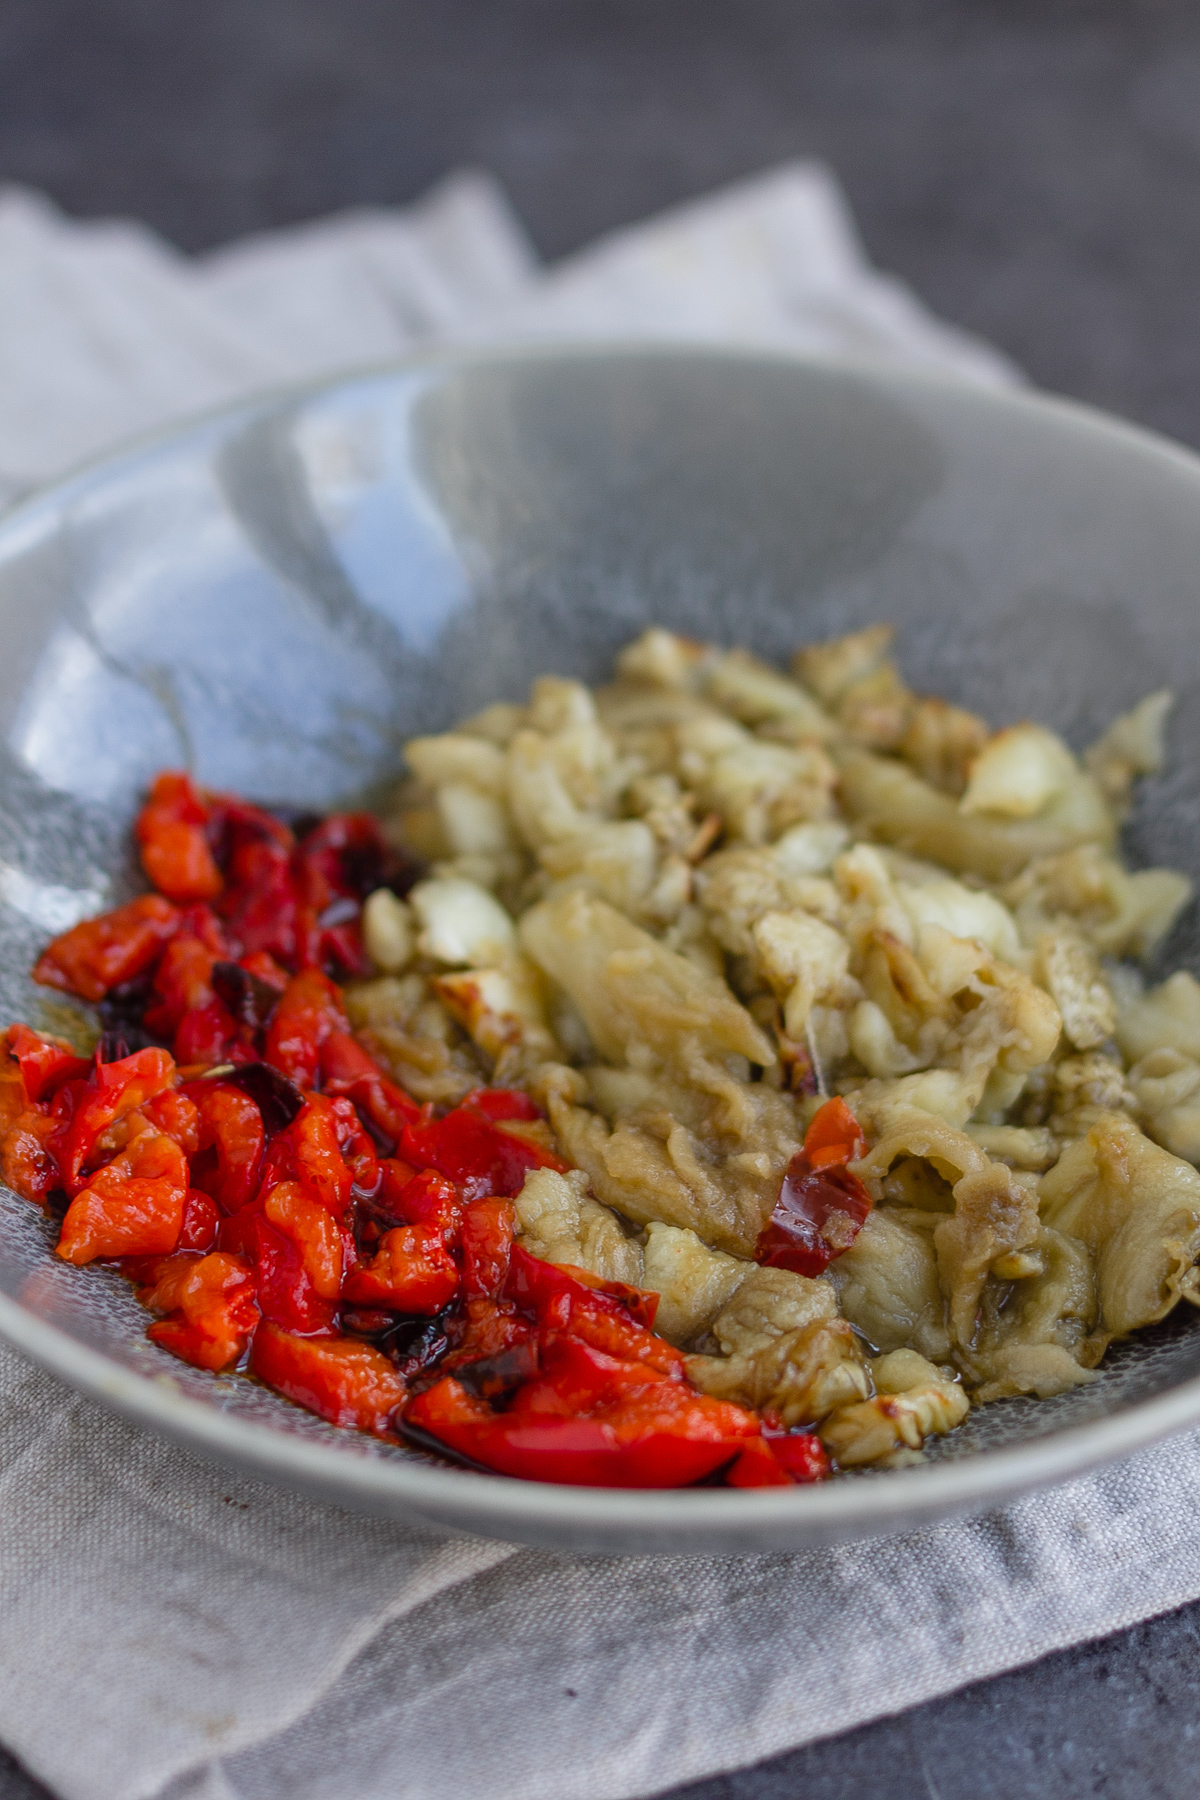 bowl with chopped roasted red pepper and aubergine eggplant